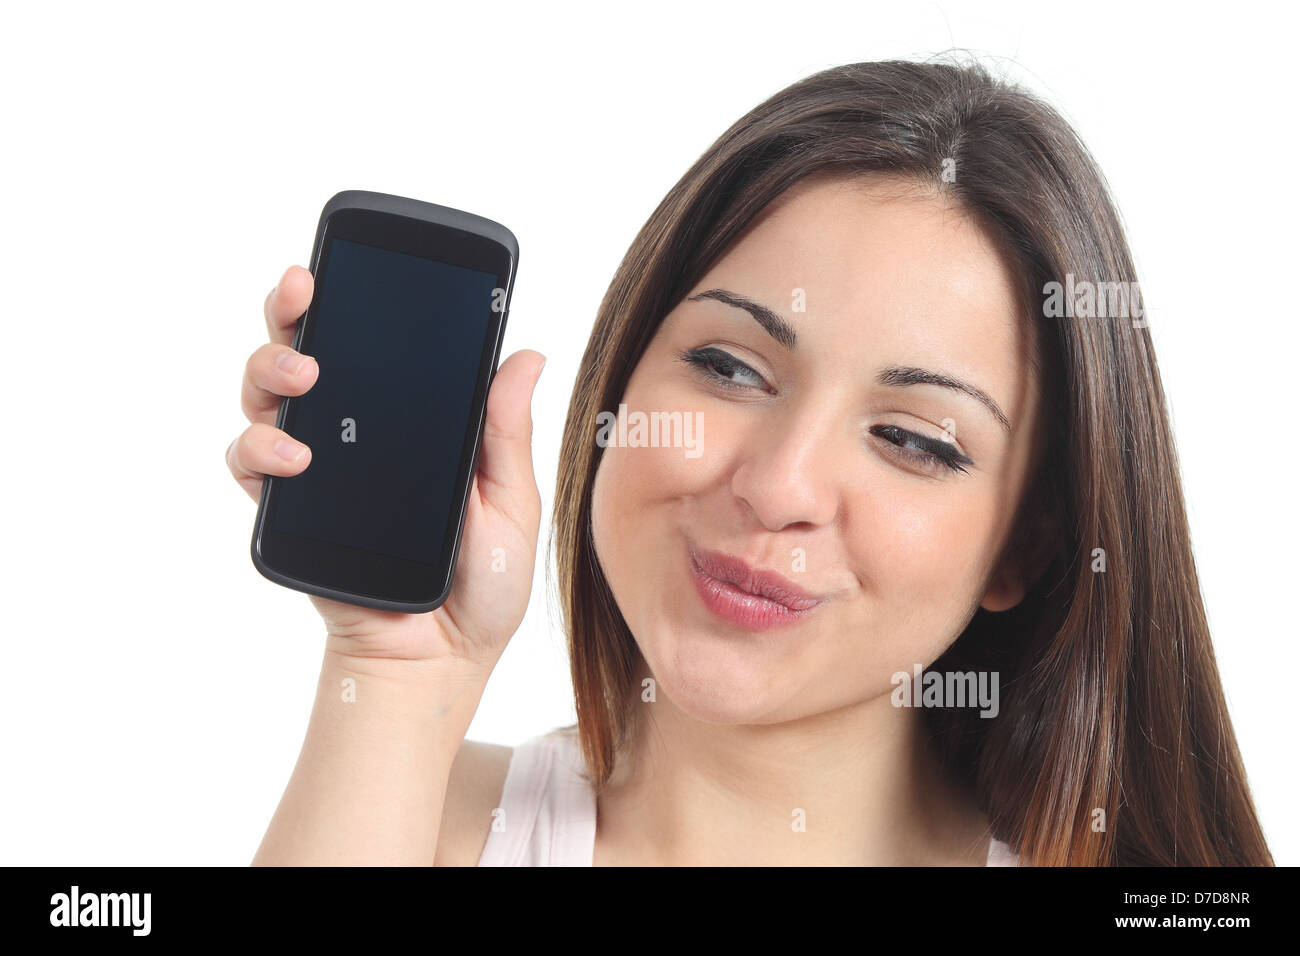 Sweet woman showing a black mobile phone screen isolated on a white background Stock Photo